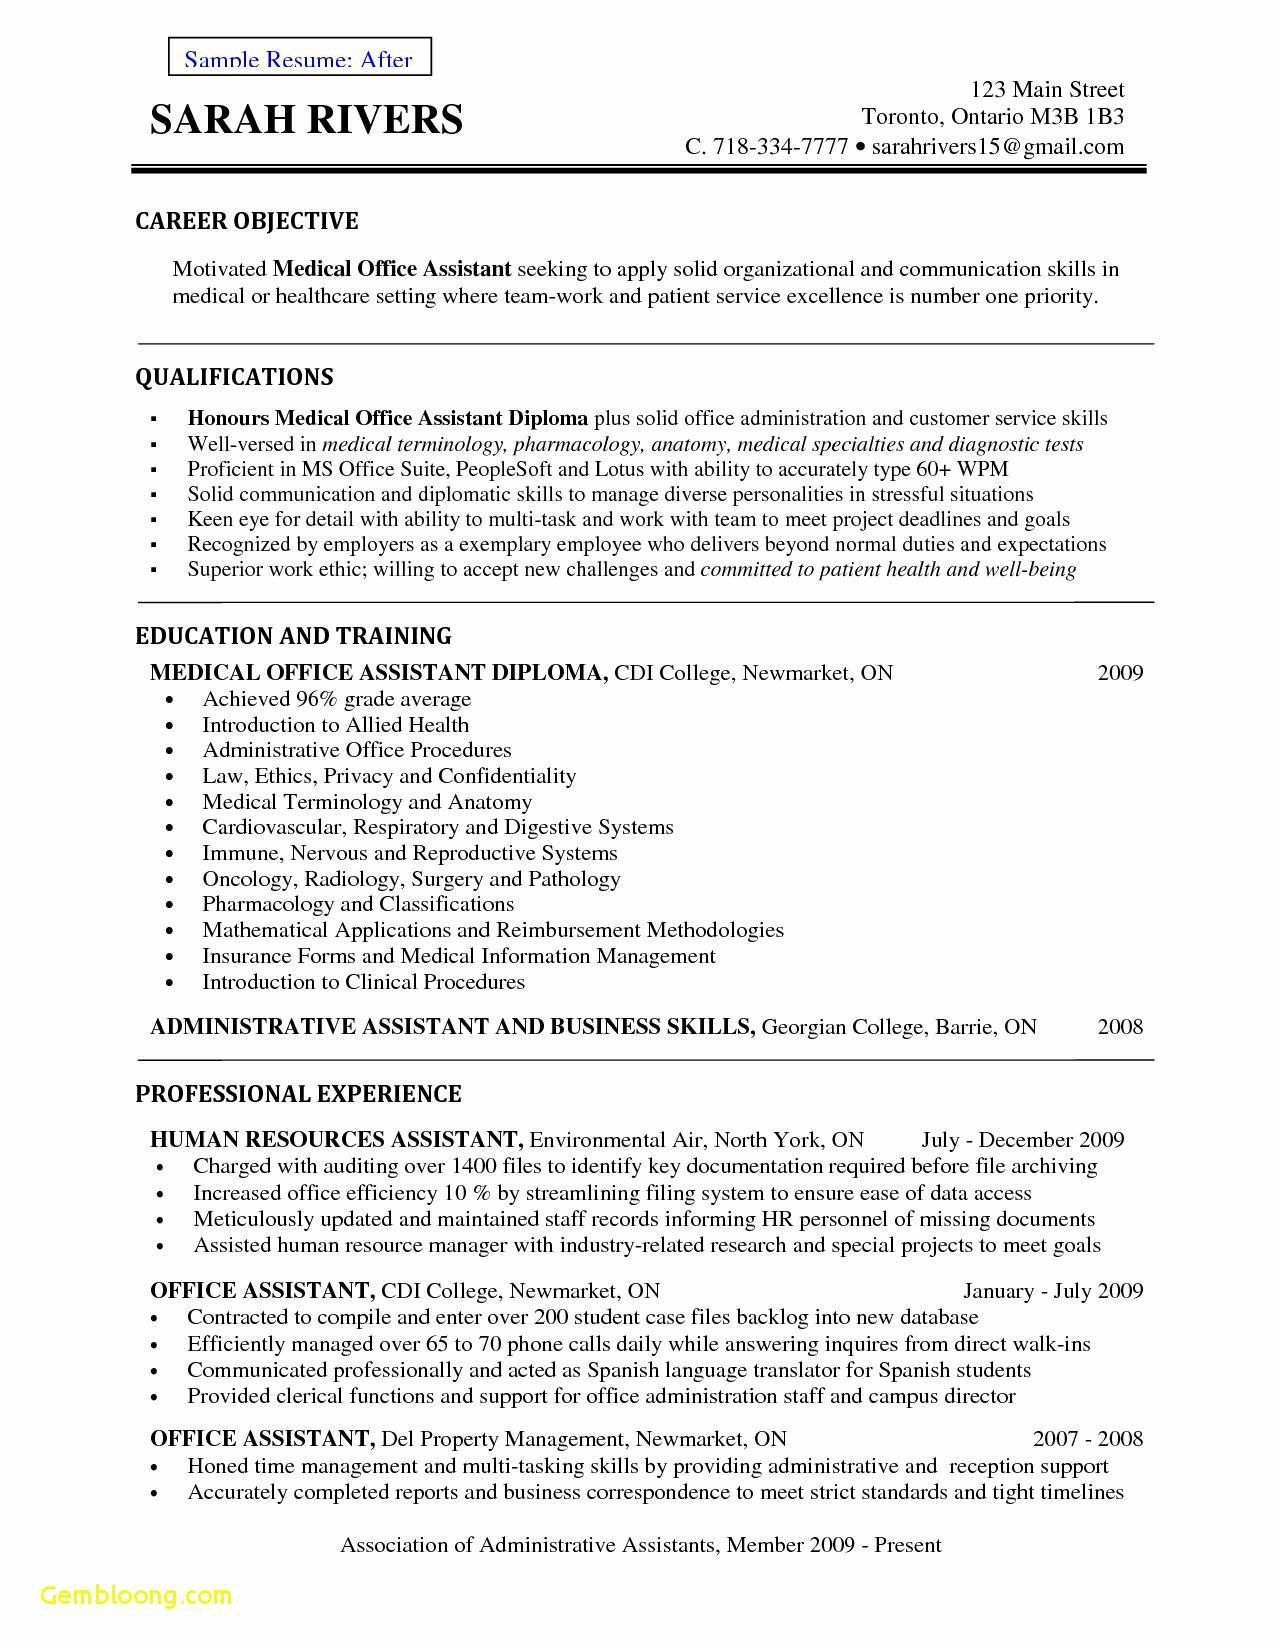 medical administrative assistant resume sample beautiful legal office skills sap wm Resume Medical Office Assistant Skills Resume